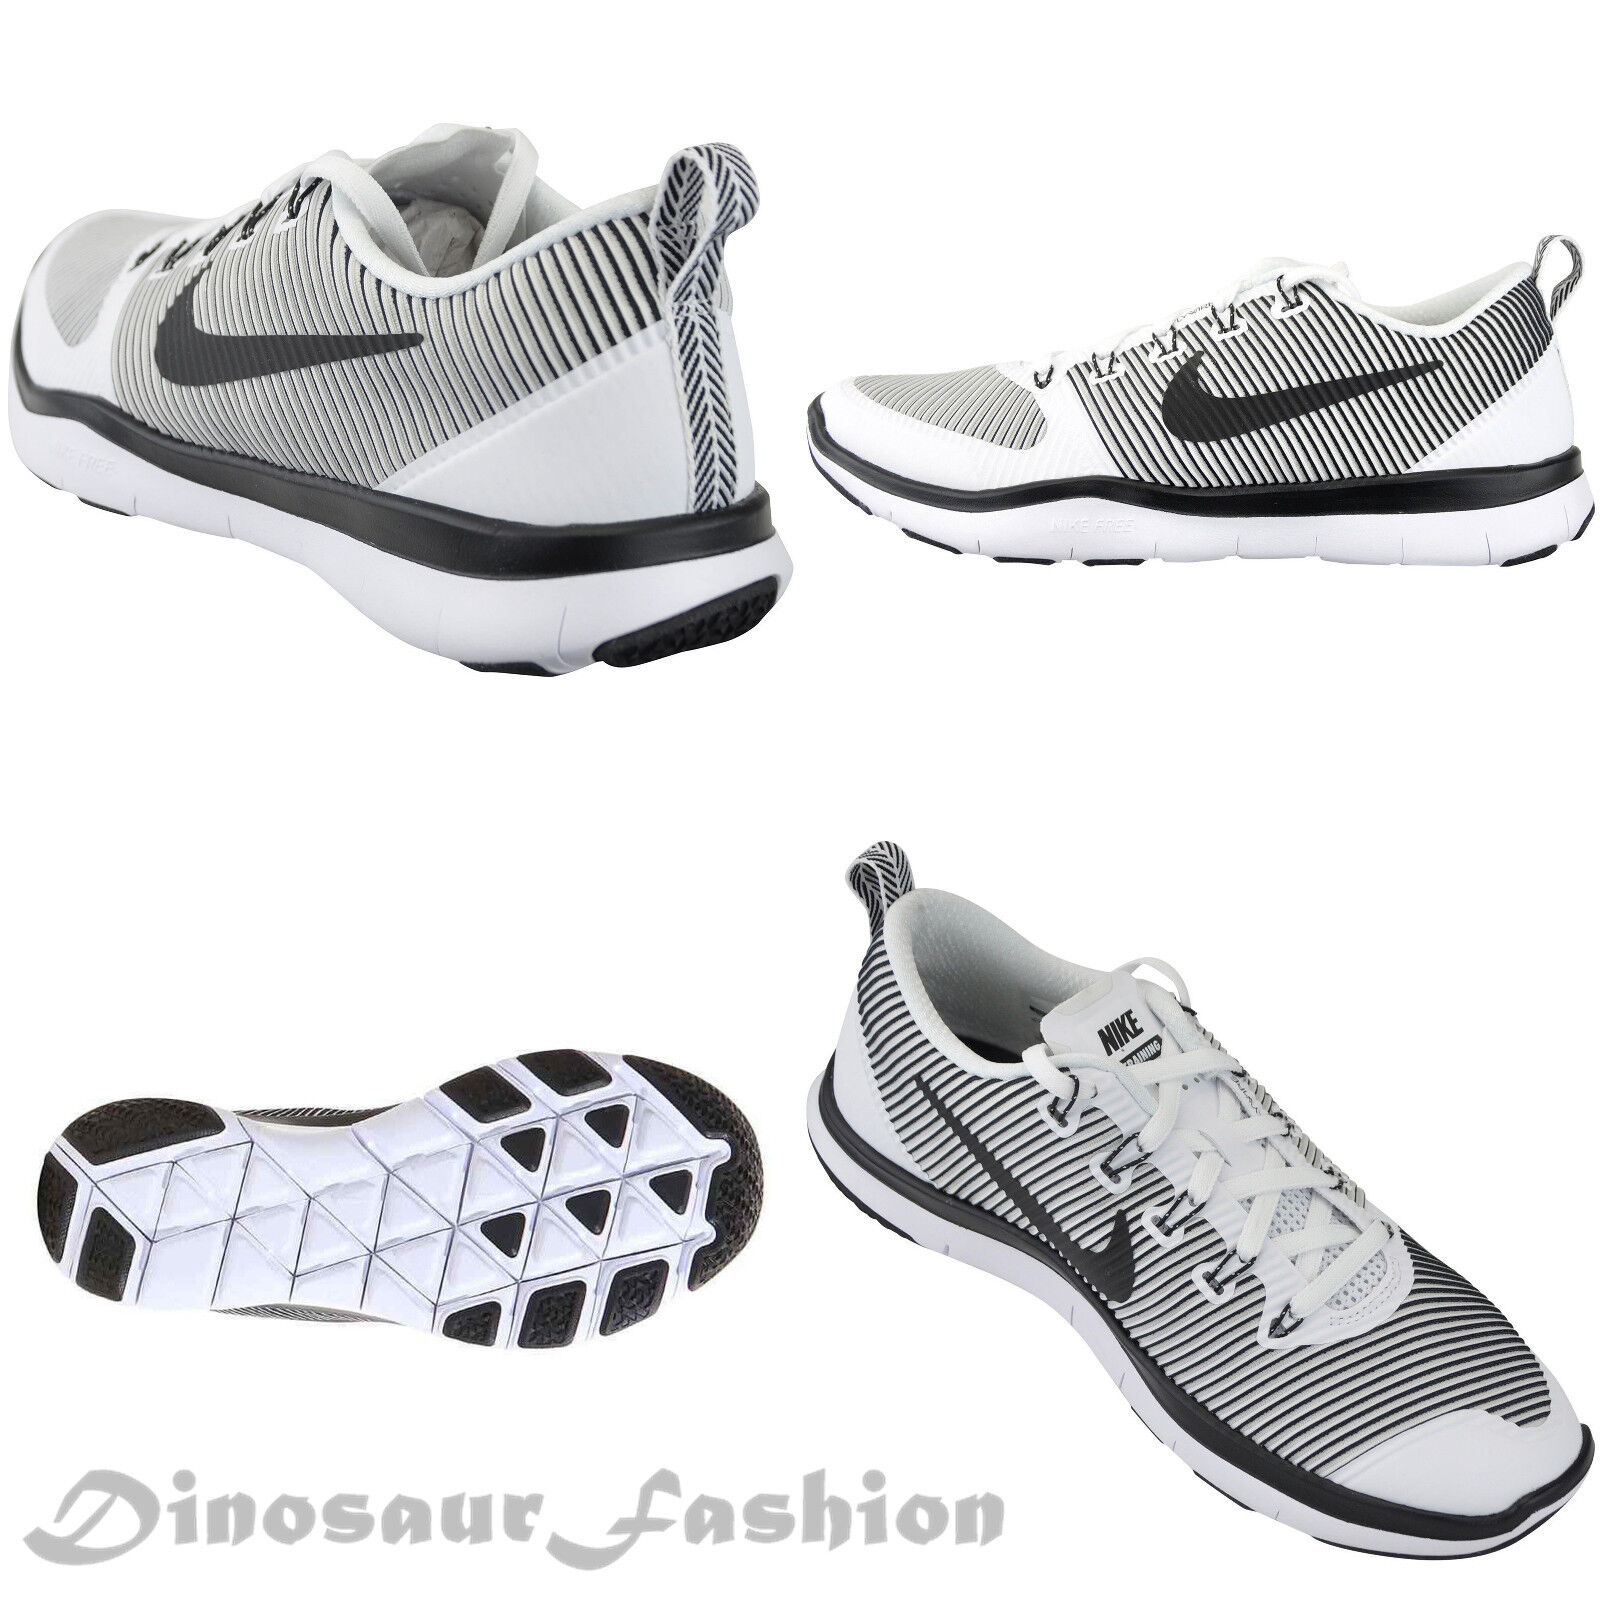 NIKE FREE TRAIN VERSATILITY 833258-100 ,Men's TRAINING Sneakers shoes.